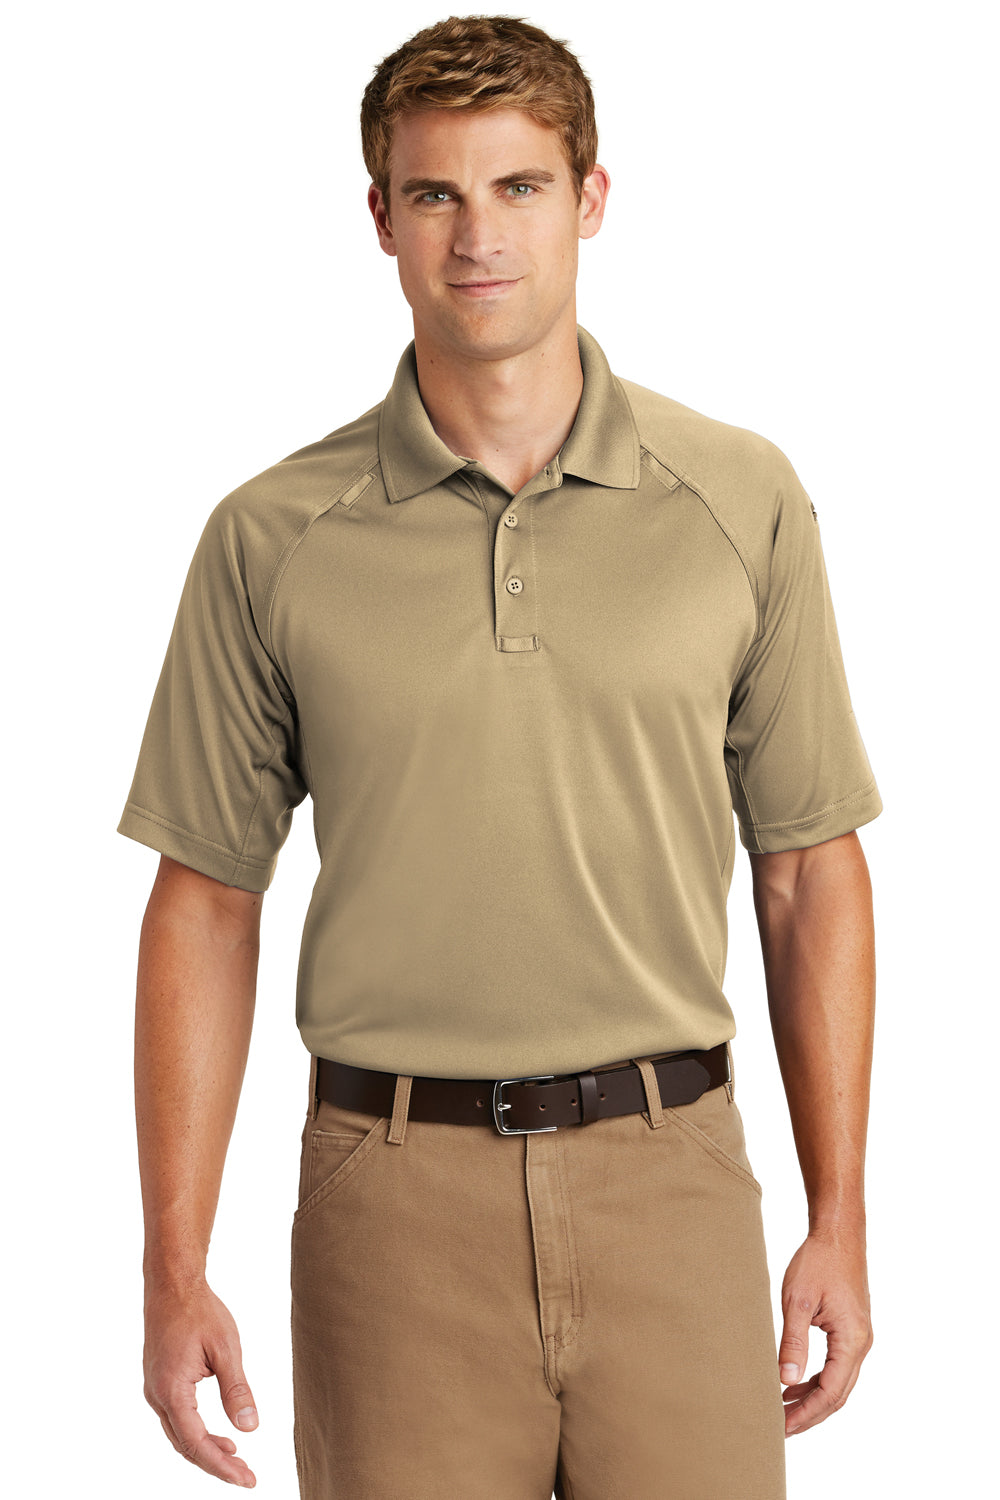 CornerStone CS410 Mens Select Tactical Moisture Wicking Short Sleeve Polo Shirt Tan Brown Front